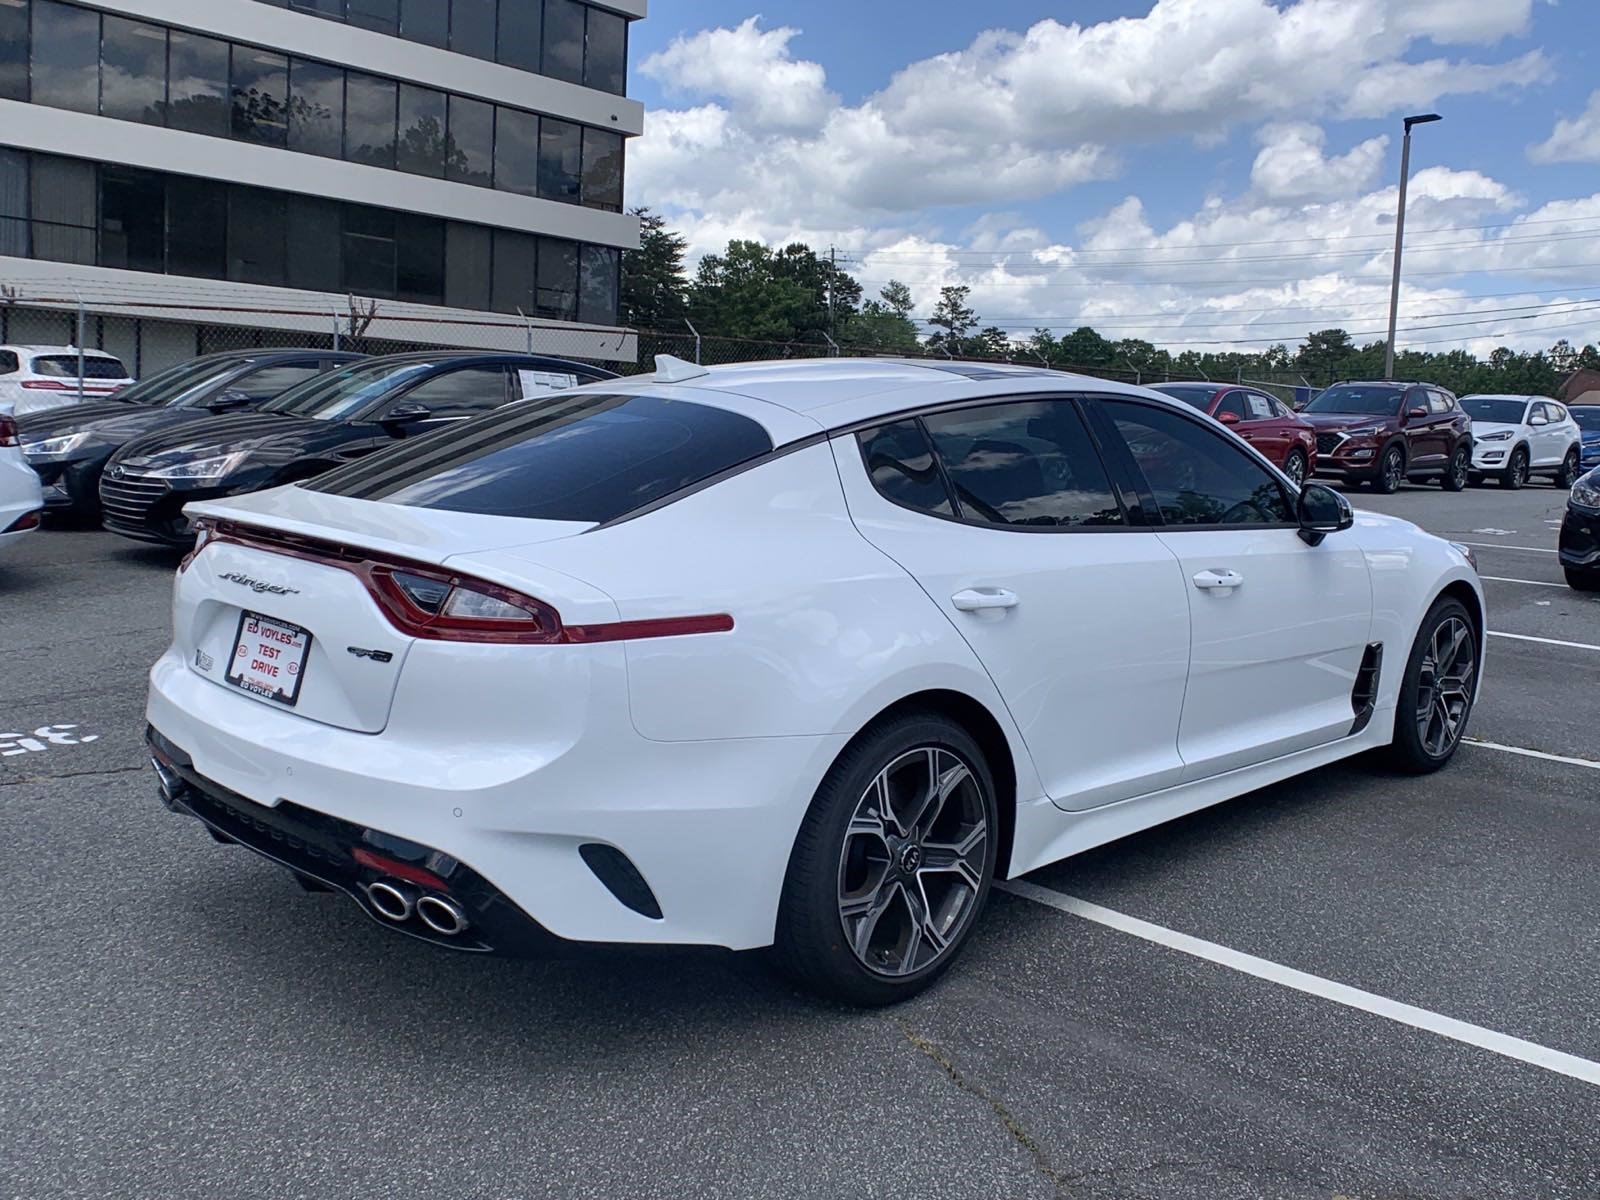 new 2020 kia stinger gt-line 4dr car in smyrna #287415